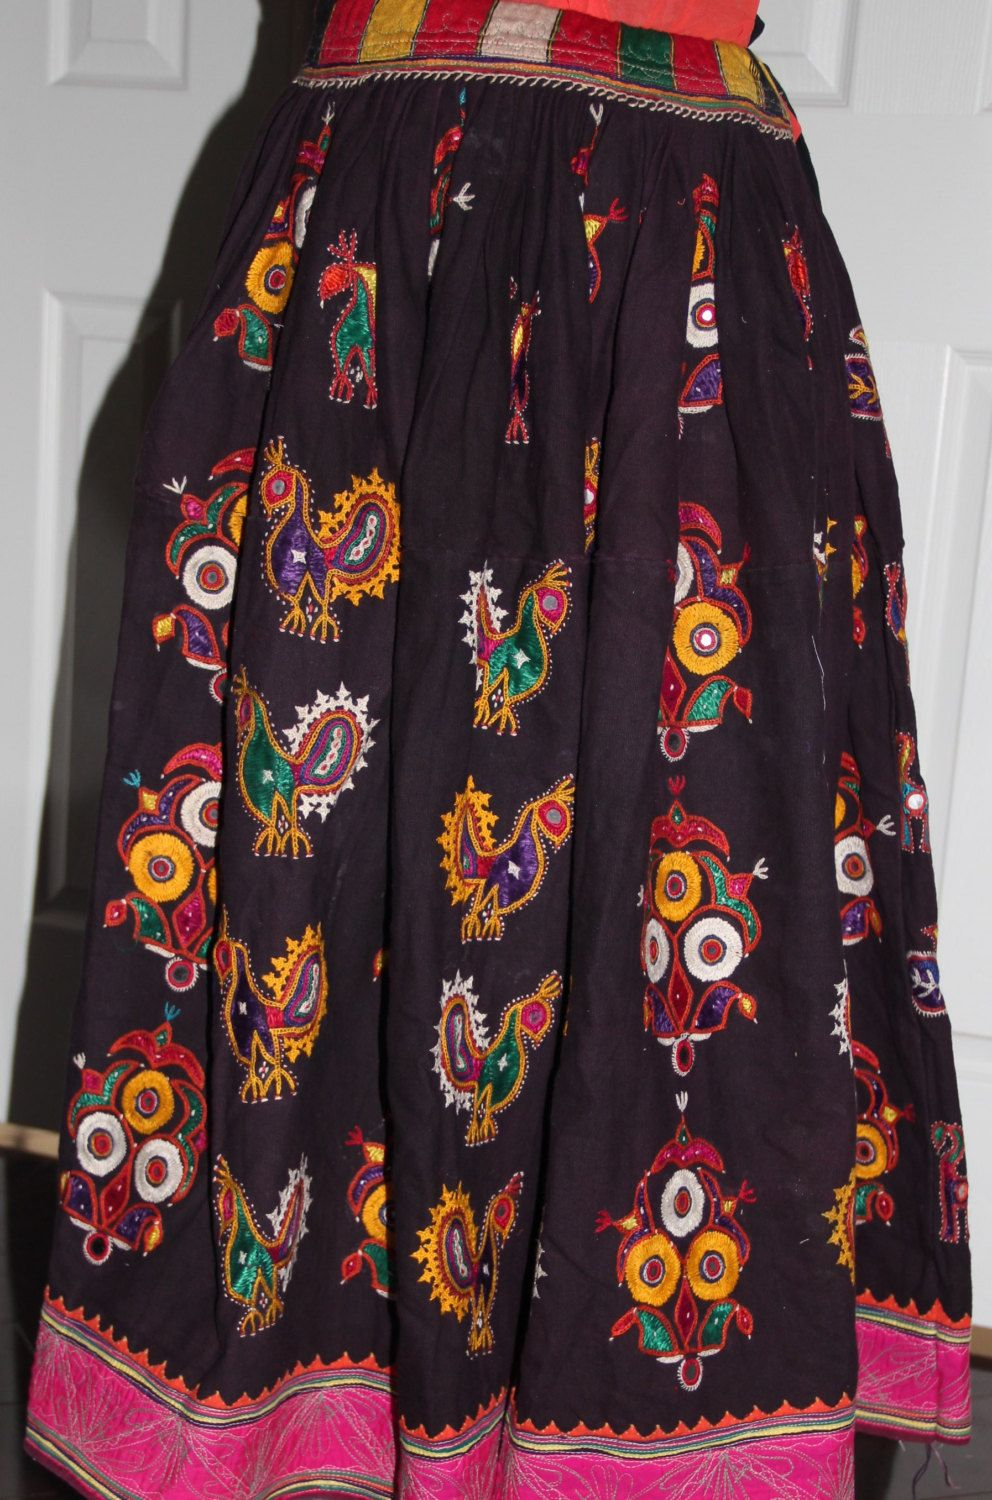 bae0d62ec054fc Beautiful Original Vintage Rabari Ghagra{Skirt} with Kutchi hand embroidery  accentuated with mirror work in black and eggplant colour by  EleganceByRajul on ...